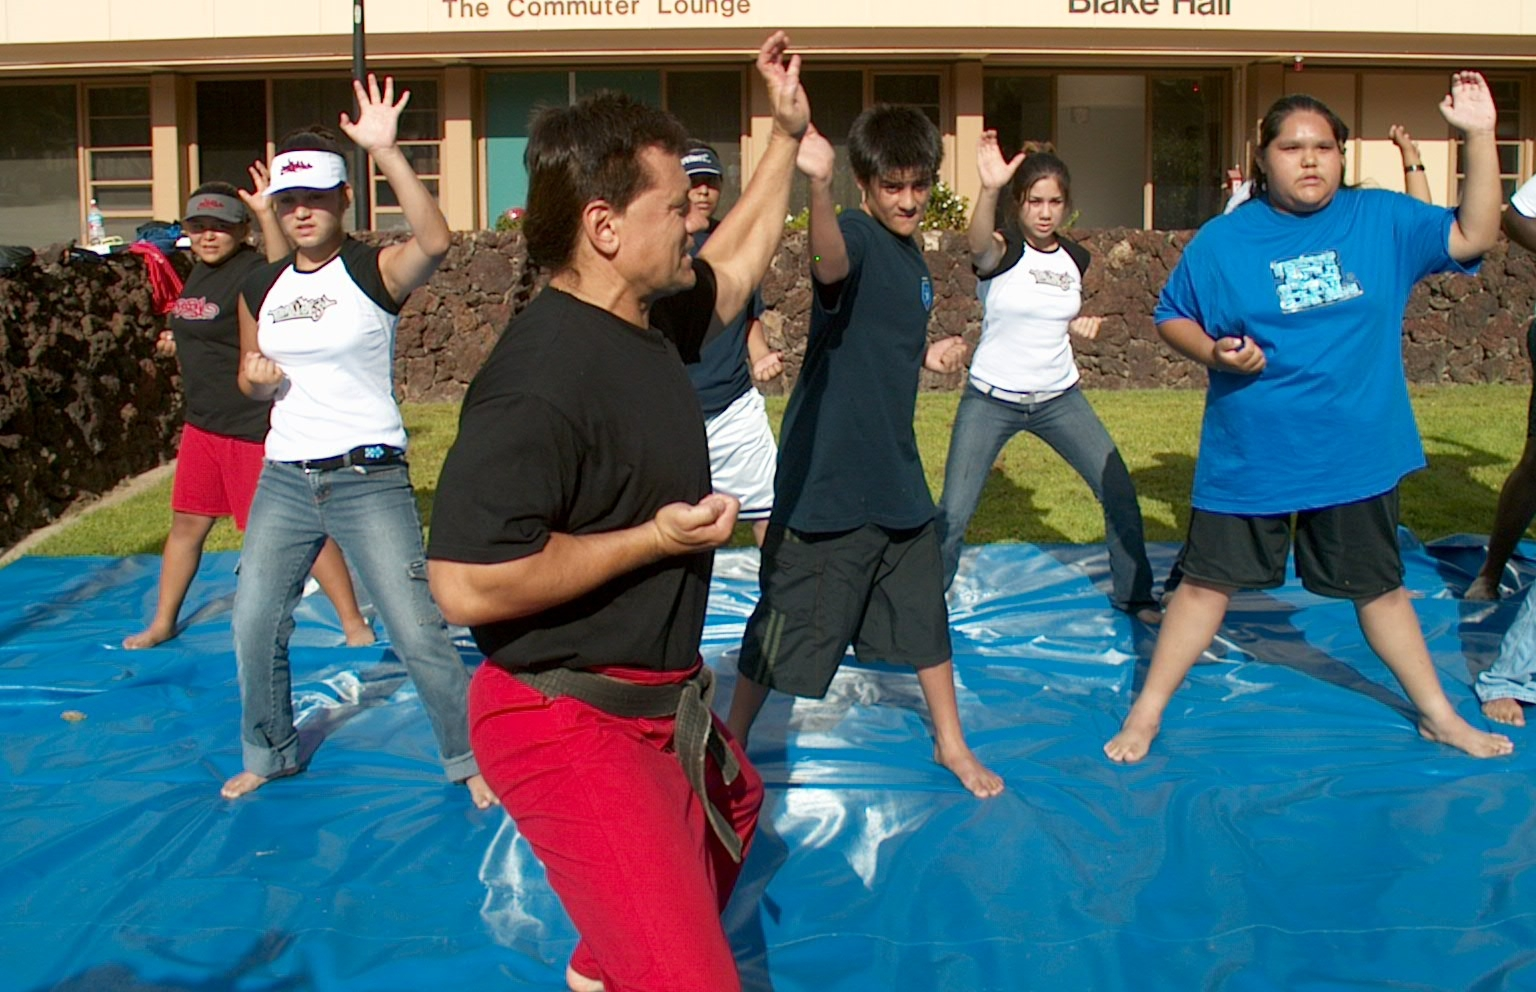 Since in the inception of InterTribal Youth Programming 18 years ago, Self defense is vital to the daily regimen, curriculum and holistic approach to education. Sensei Jackson, One World BRidge Director, and ITY Alum demonstrate the bear claw. Its reall out there, especially for young females, and self defense is key to survival Photo Circa 2004